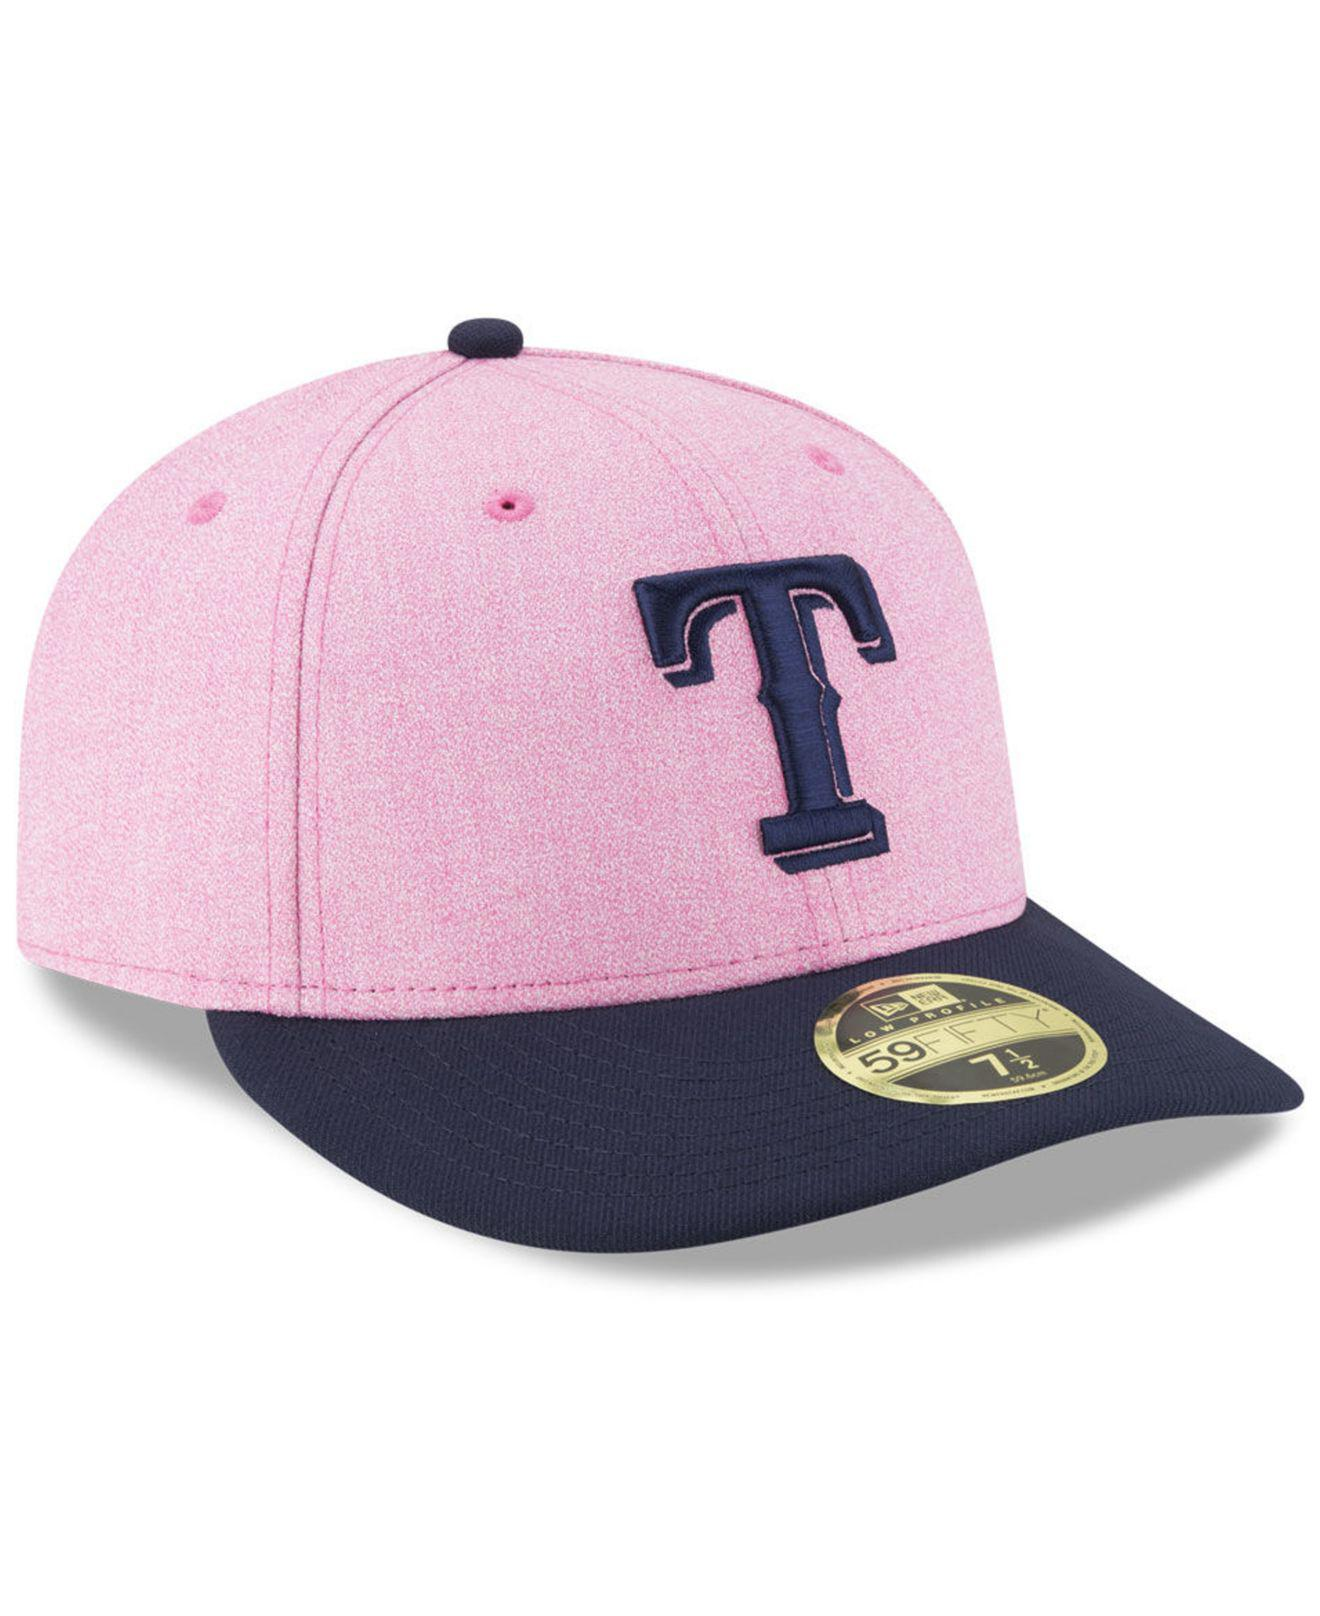 sale retailer ca52b 4bc84 ... new zealand texas rangers mothers day low profile 59fifty fitted cap  lyst. view fullscreen 6eef7